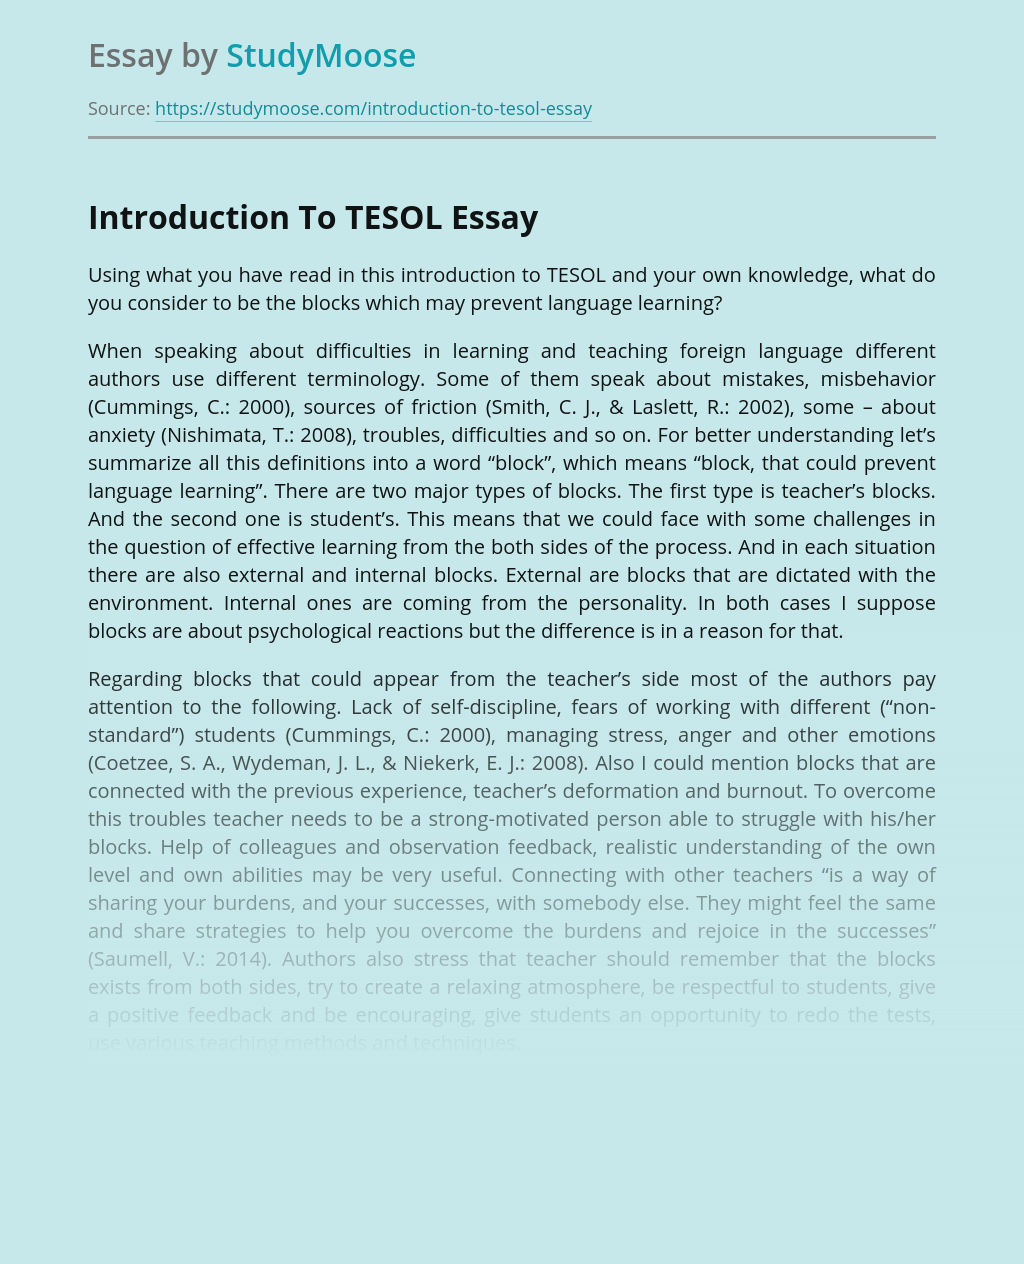 Introduction To TESOL